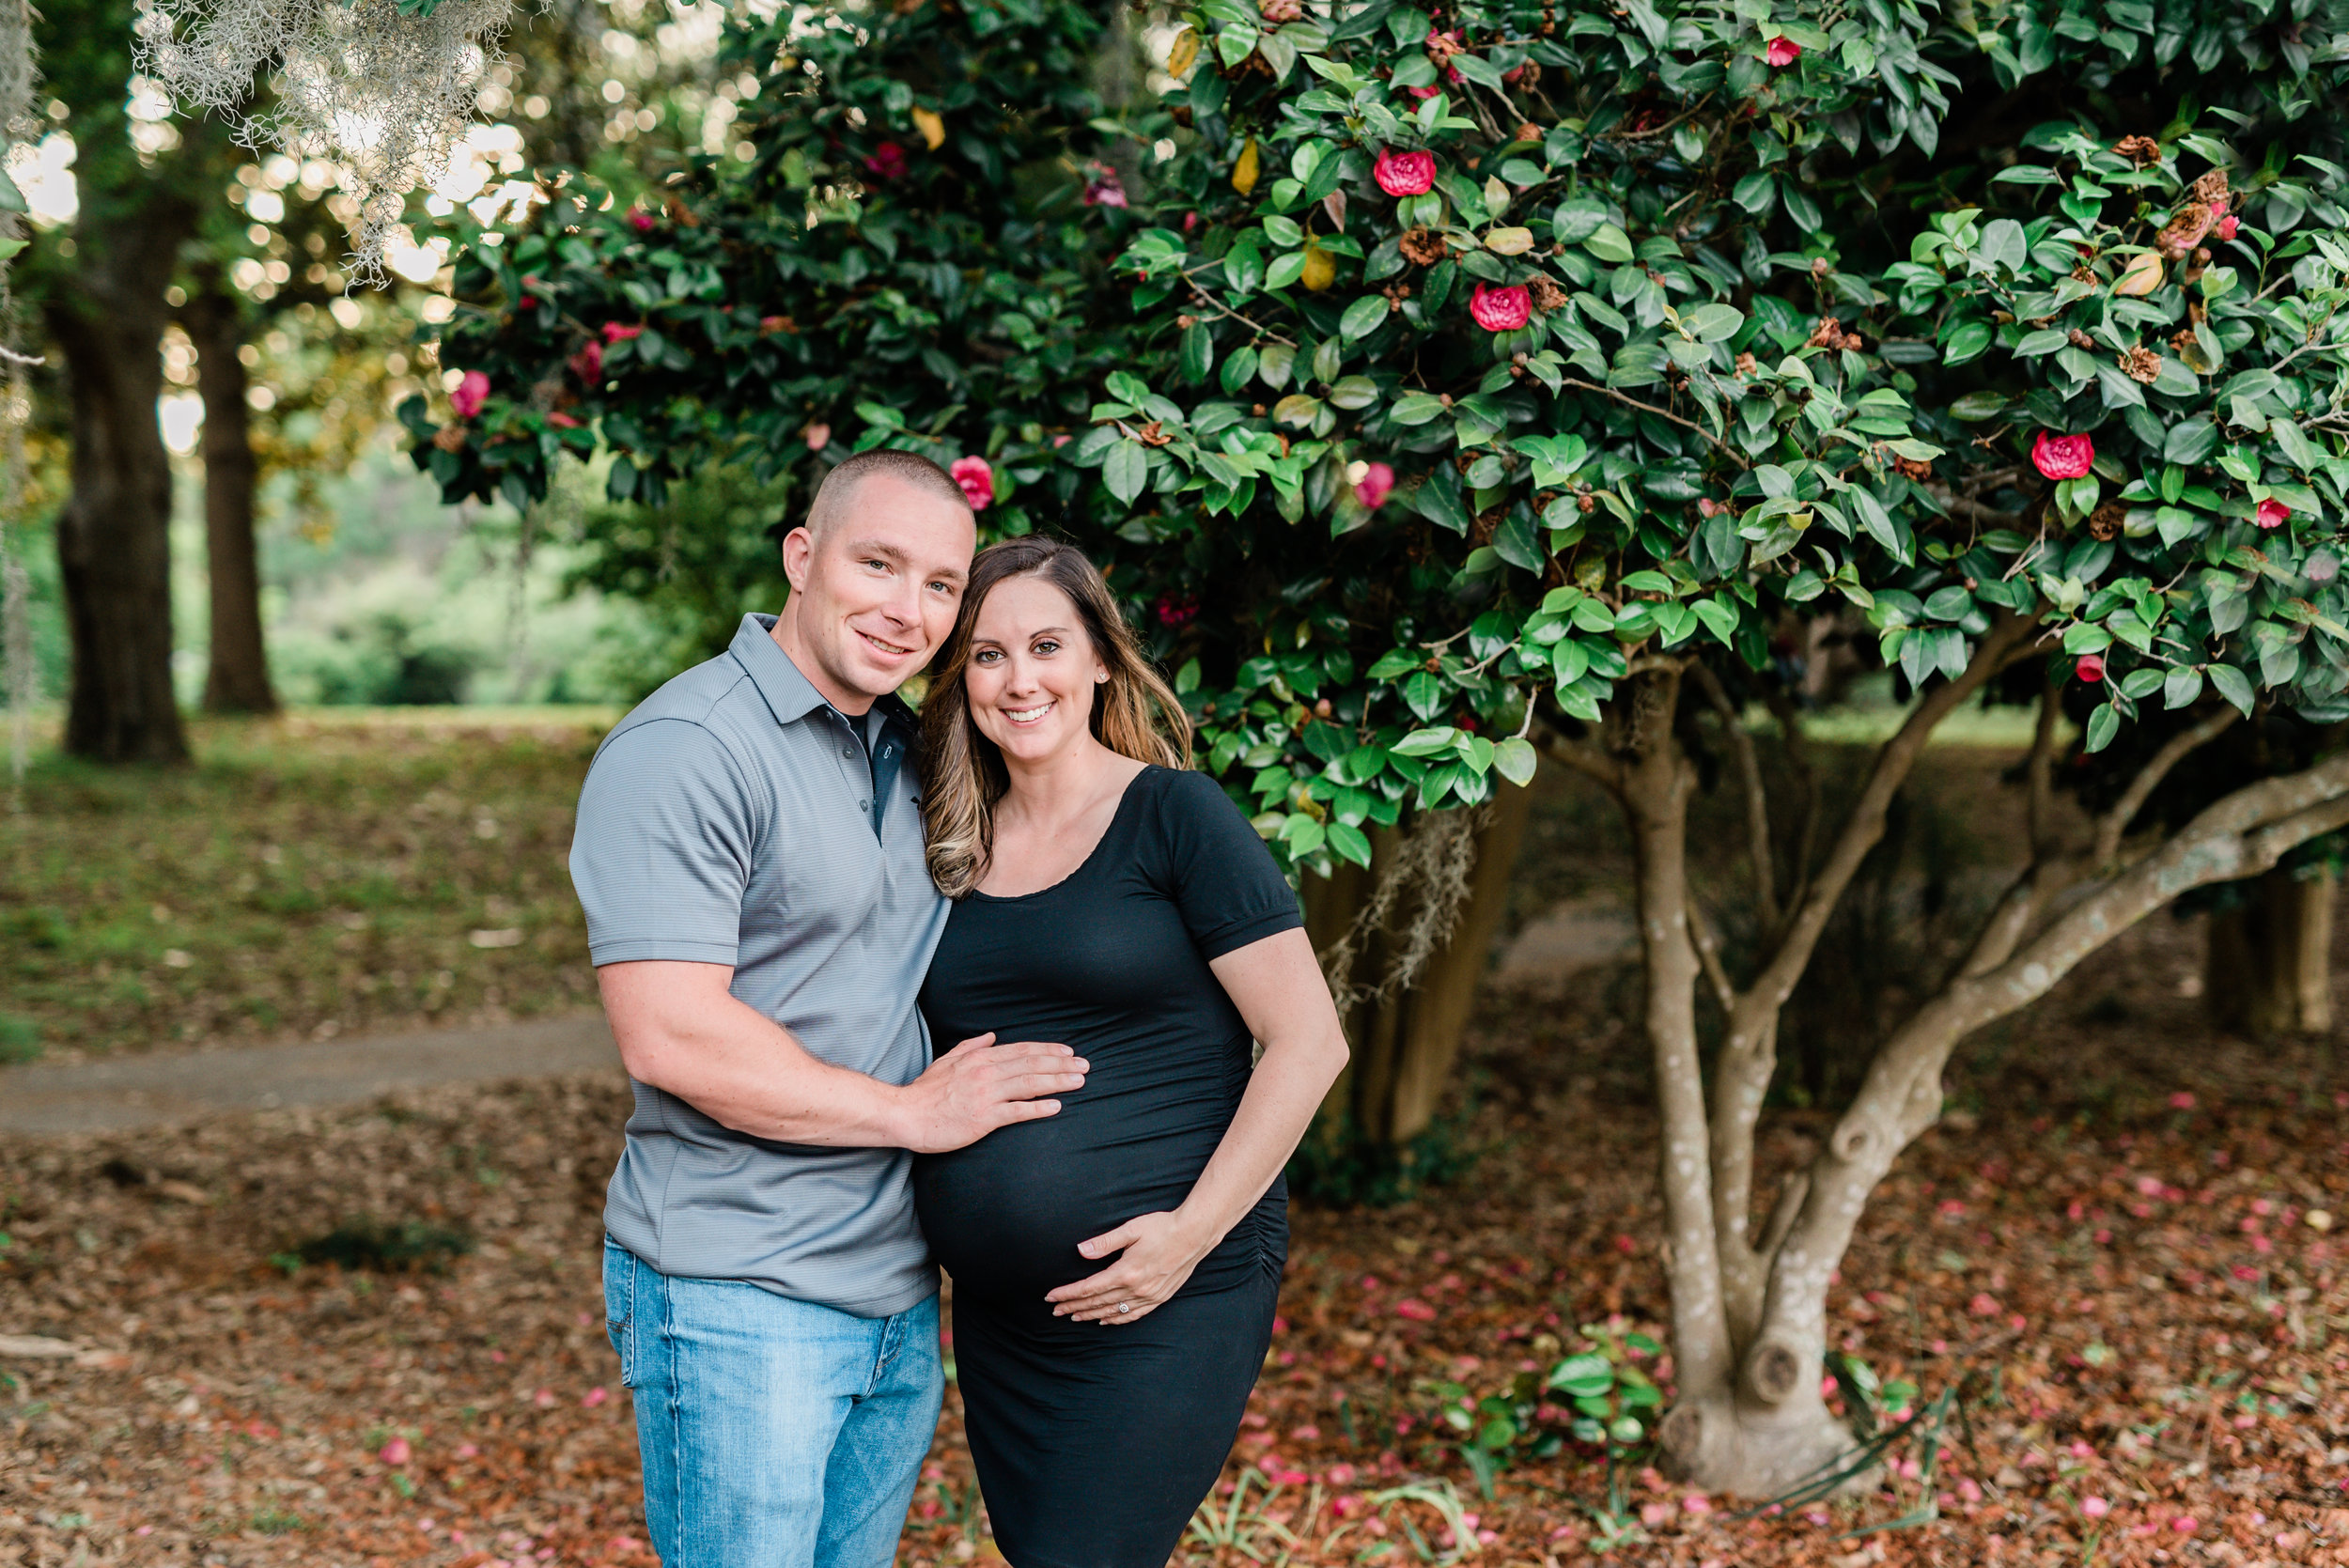 Charleston-Maternity-Photographer-Following-Seas-Photography-FSP_5963 copy.jpg